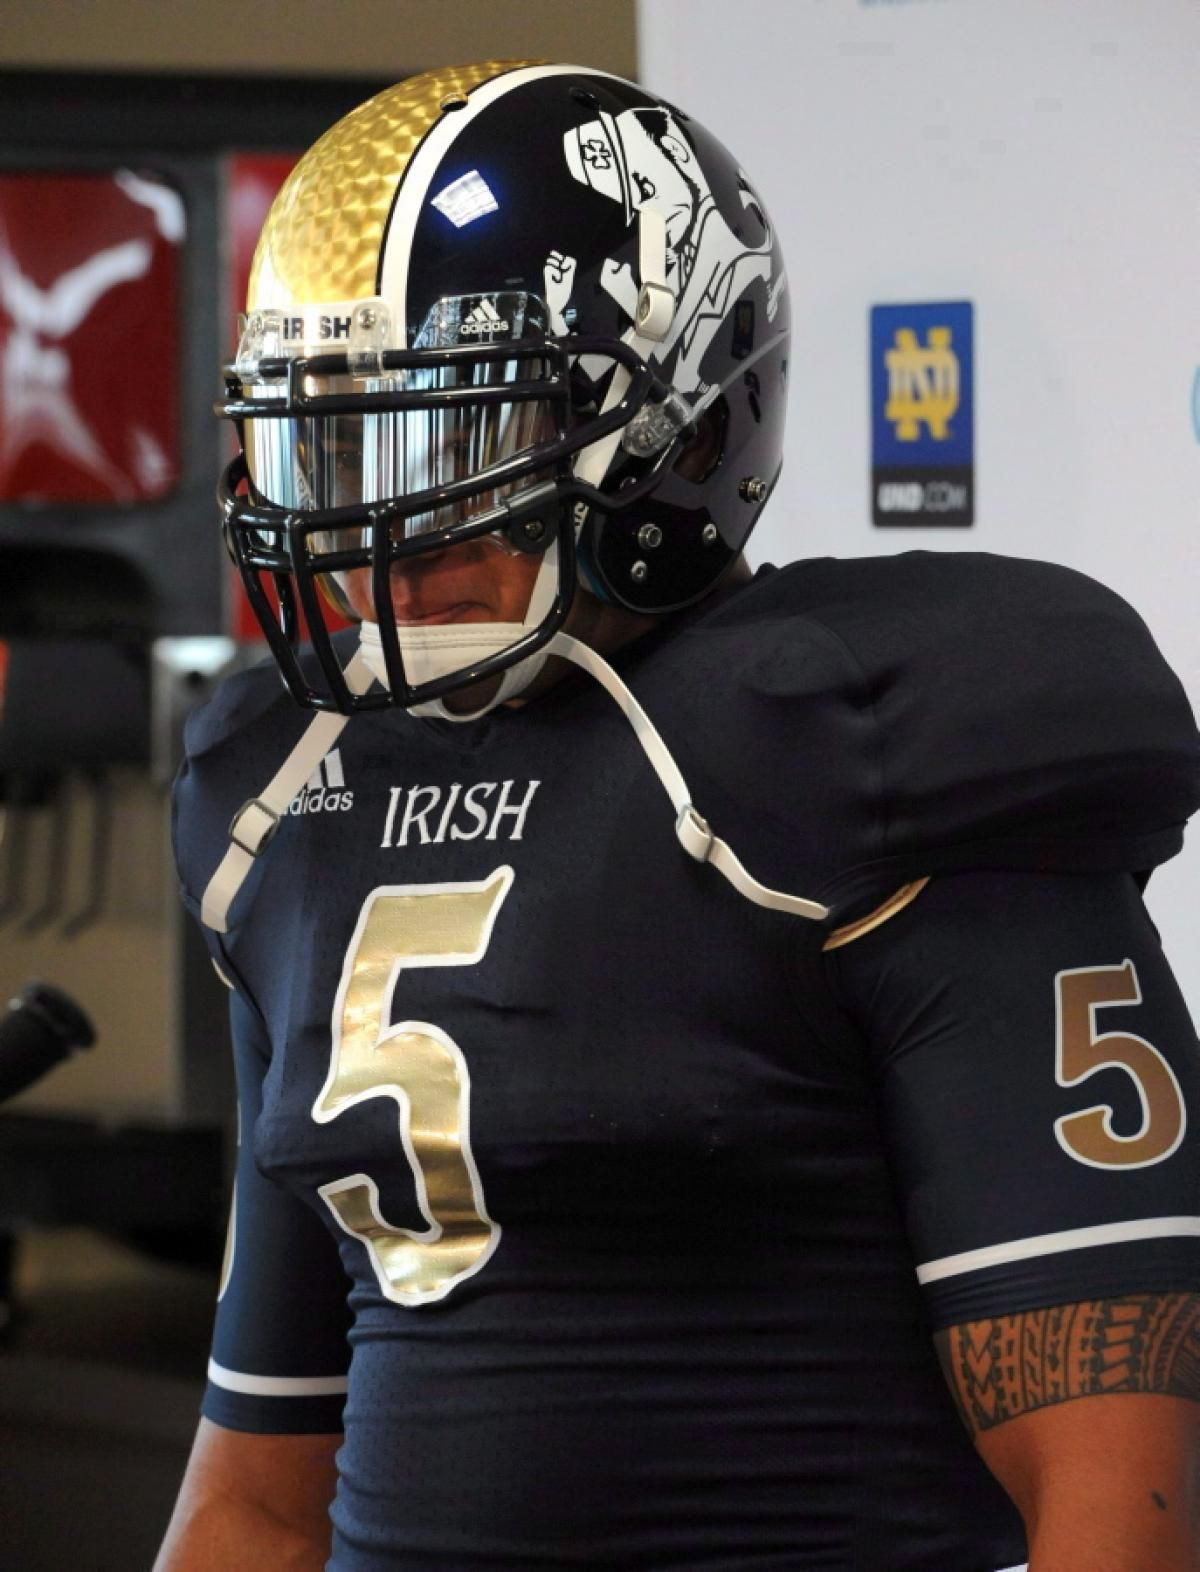 73acf1b8a The all-time classic Navy and Gold uniforms of Notre Dame are some of the  most recognizable in sports. Even their newer-but-retro-looking green  jerseys and ...